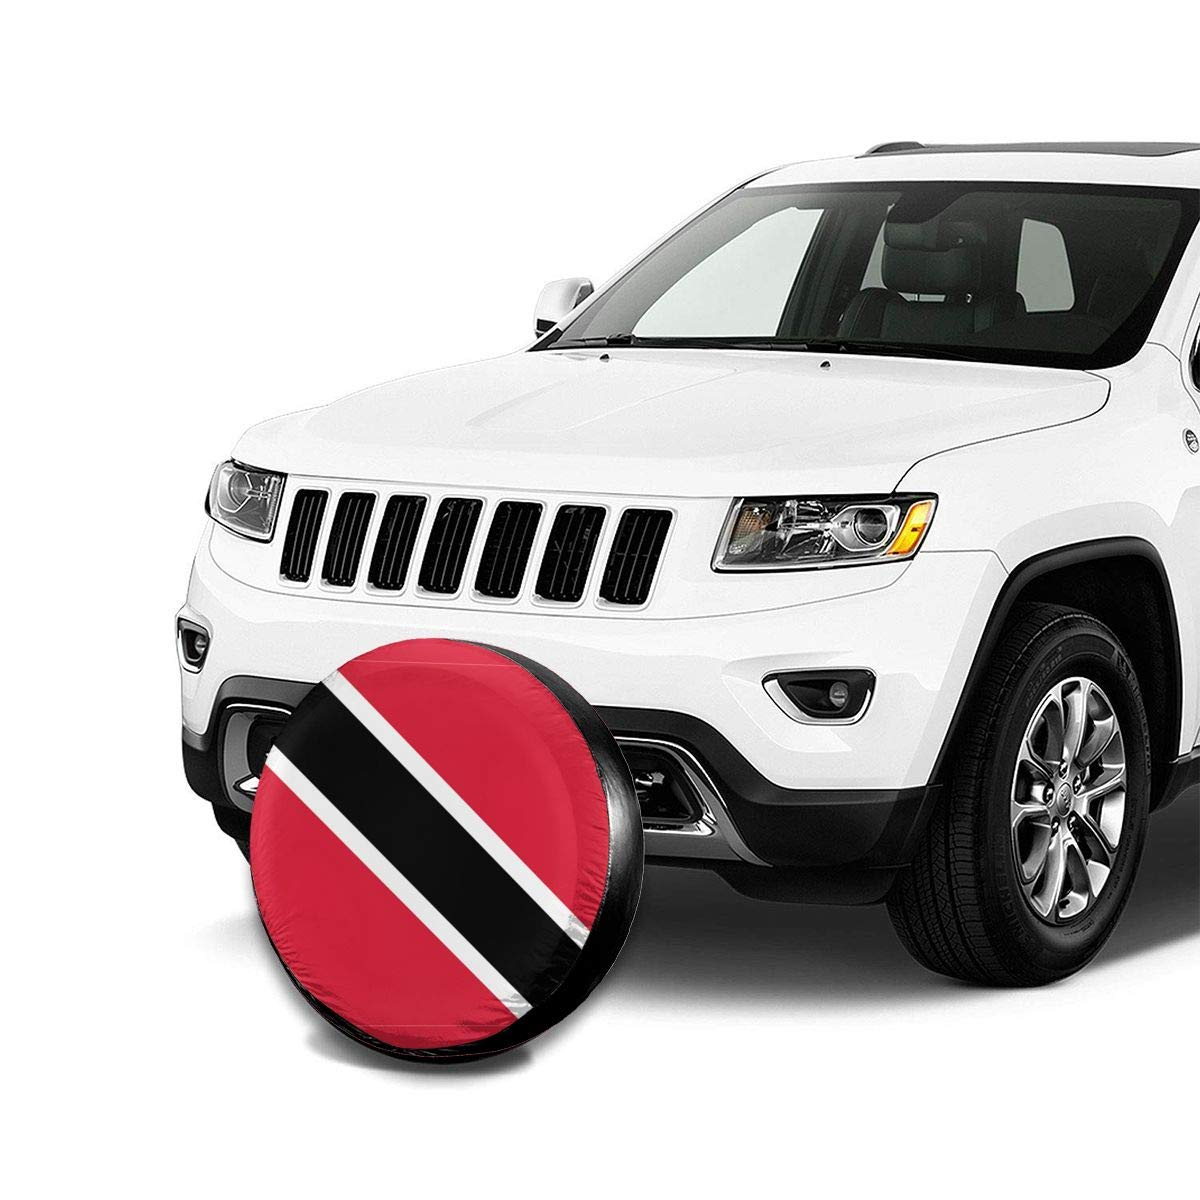 Jackie Prout ss Spare Tire Cover Universal Fit for Jeep,Trailer SUV 14 15 16 17 RV Truck and Many Vehicle